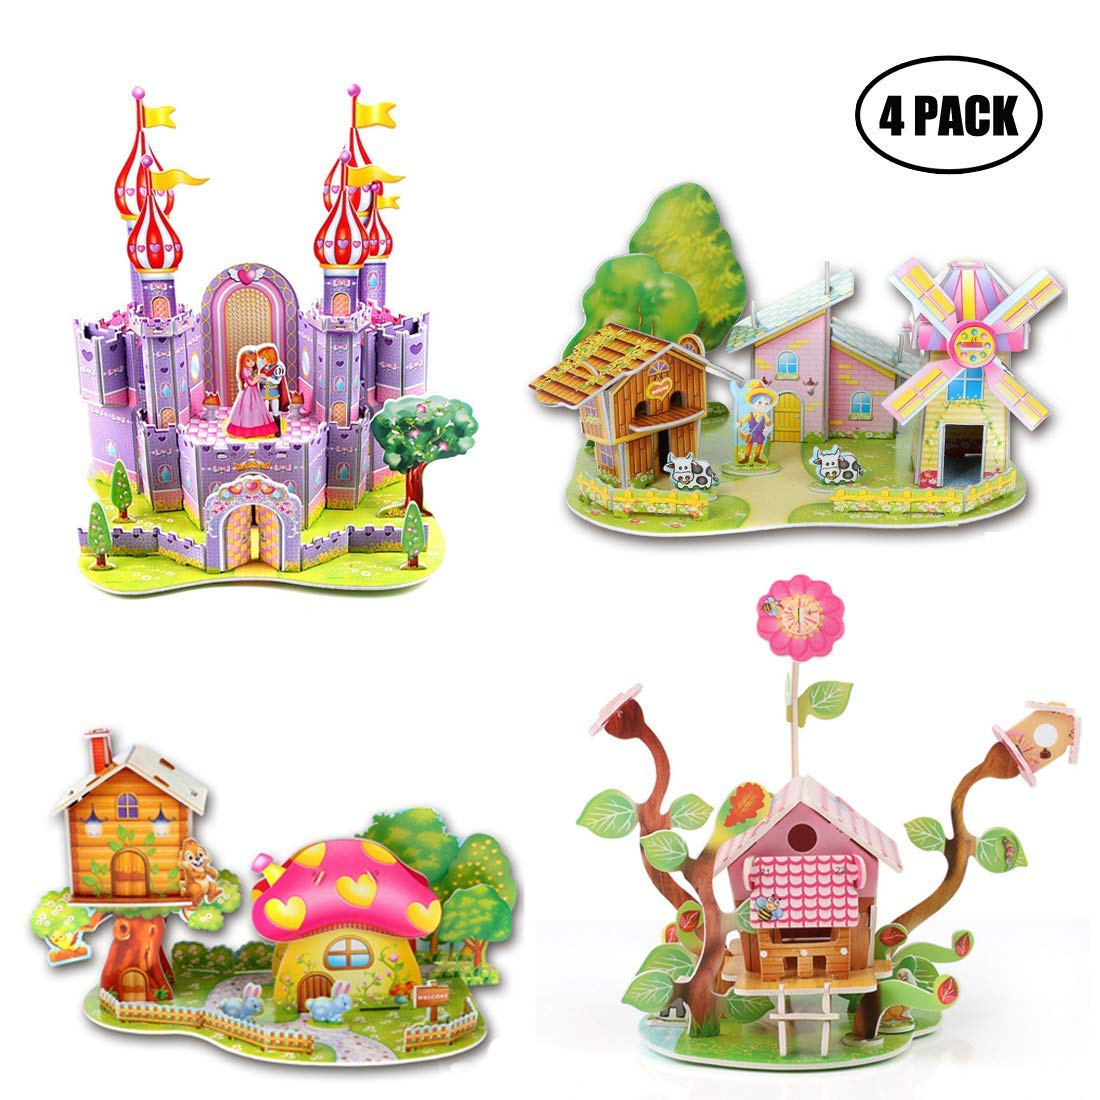 45b7d646d 3D Puzzle DIY Building Model Craft Kits for Ages 3-5 5-8 8-10 10-12 Year  Old Girls Kids Boys,Colourful Castle Windmill Houses Cardboard 3D Puzzle  Toys for ...